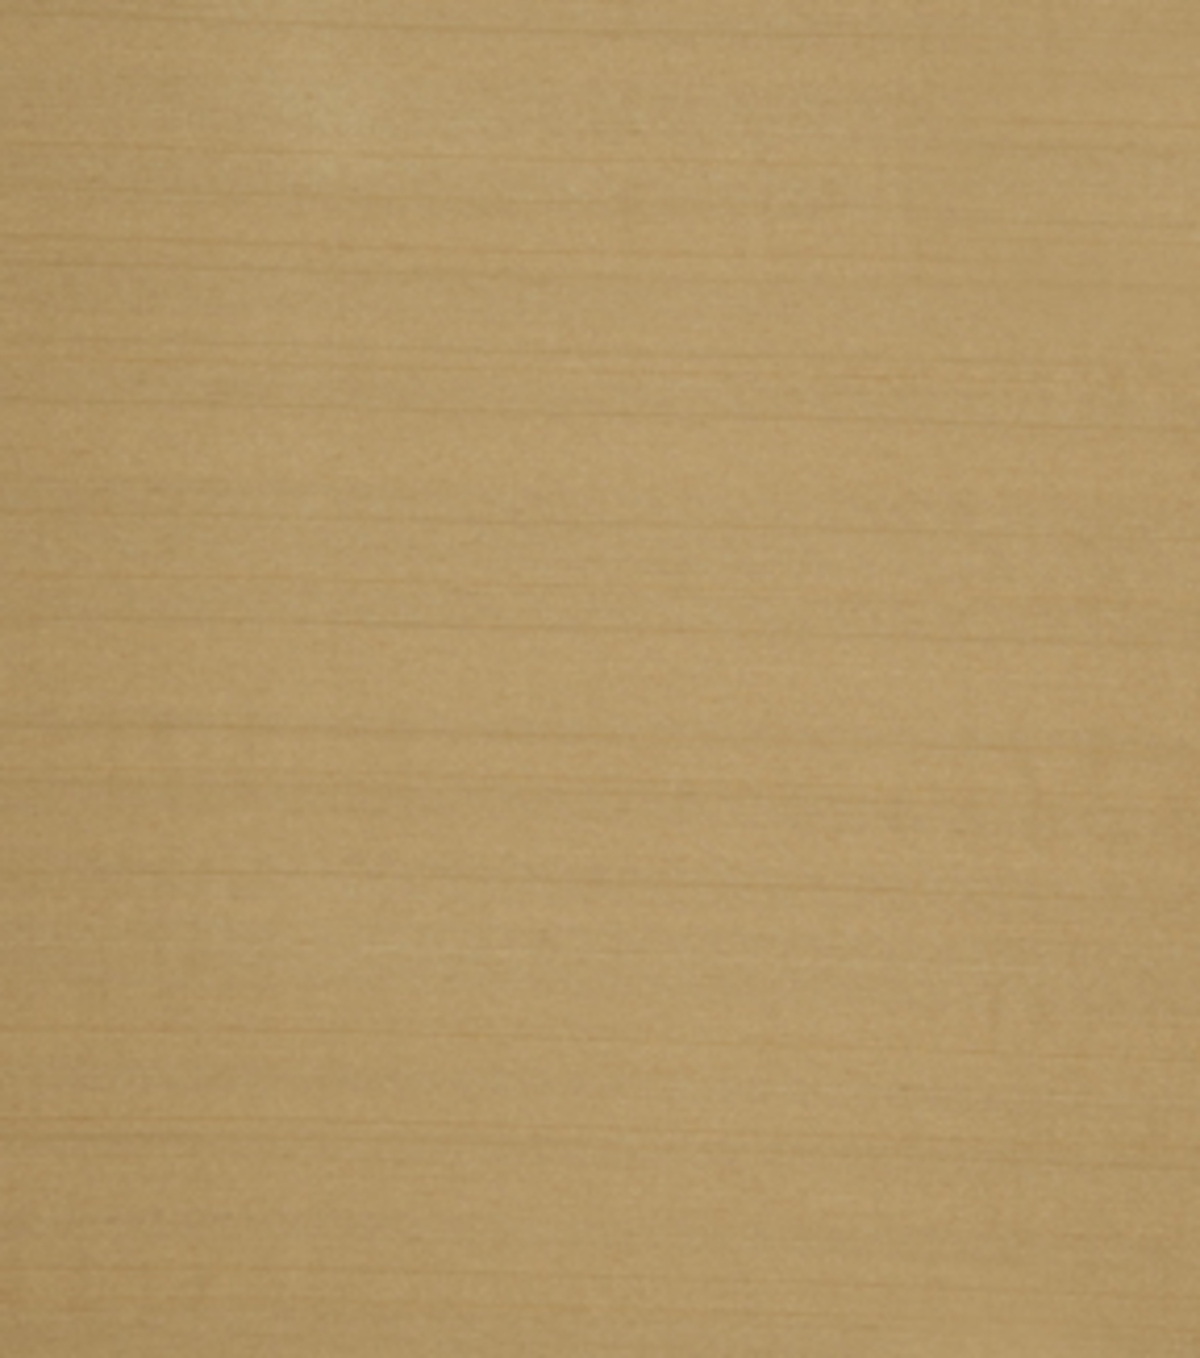 Home Decor 8\u0022x8\u0022 Fabric Swatch-Signature Series Bravo Caramel